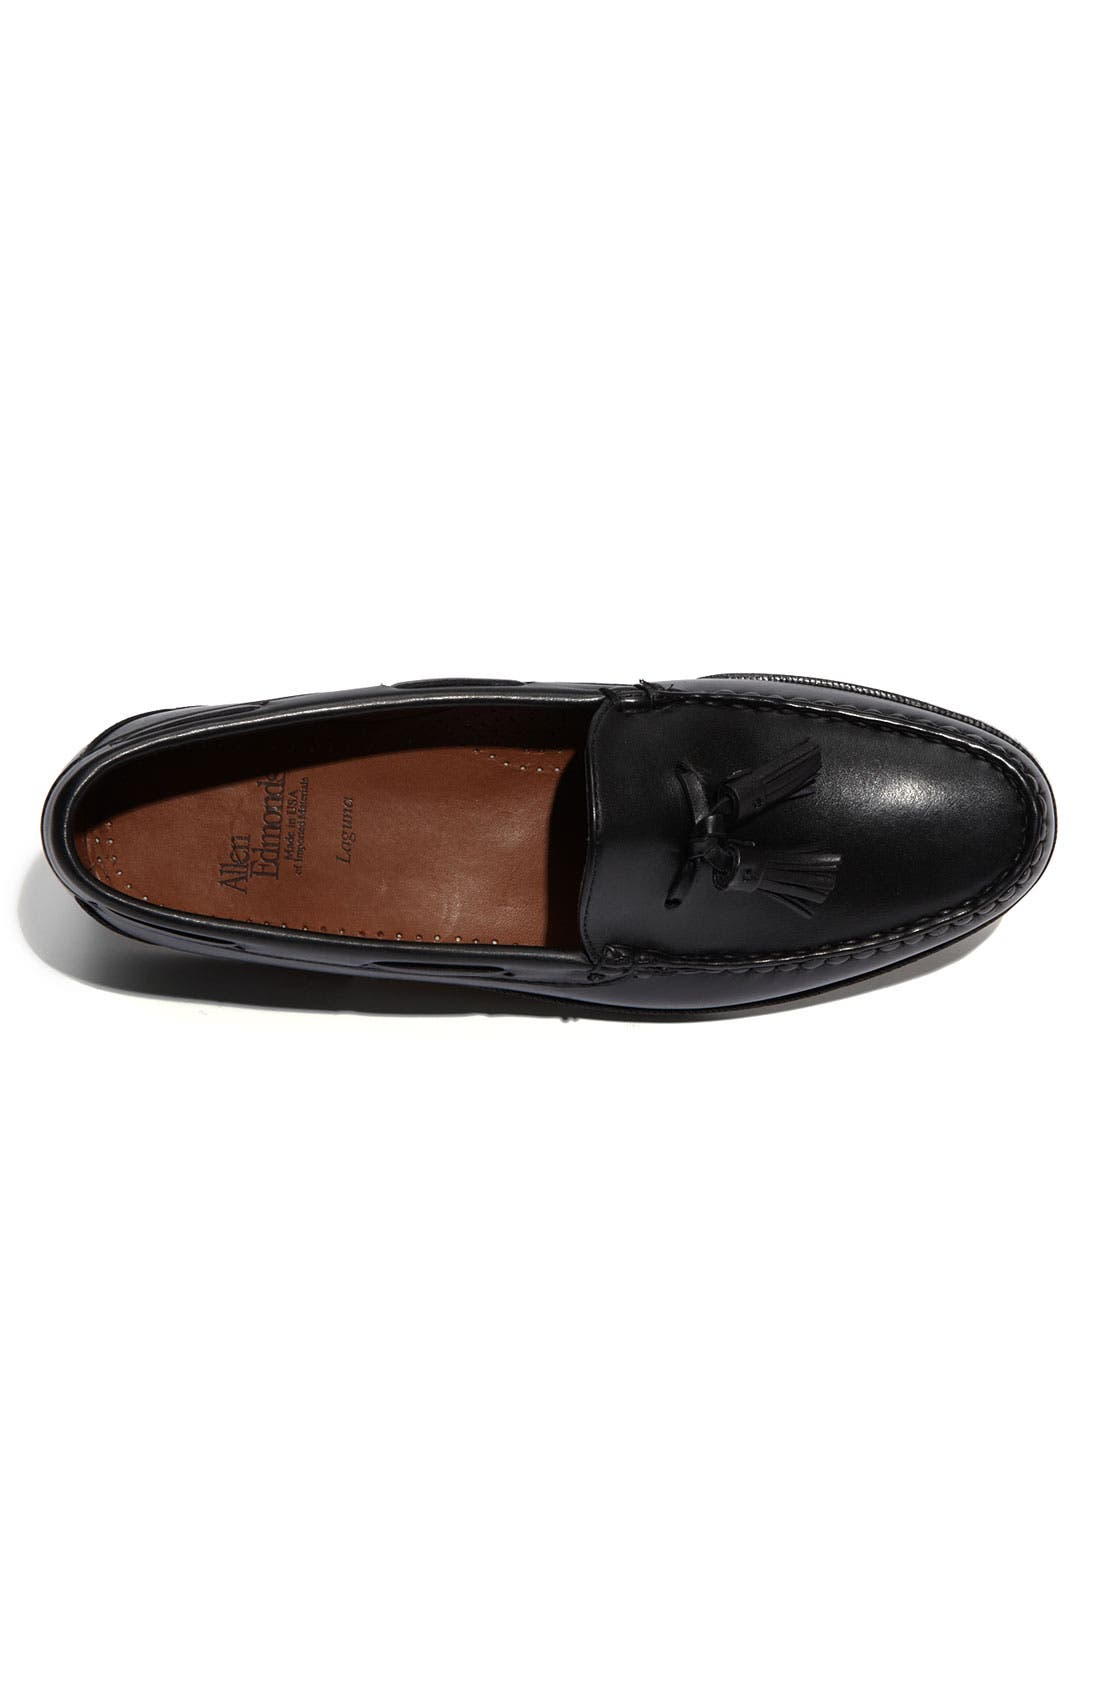 Alternate Image 3  - Allen Edmonds 'Naples' Loafer